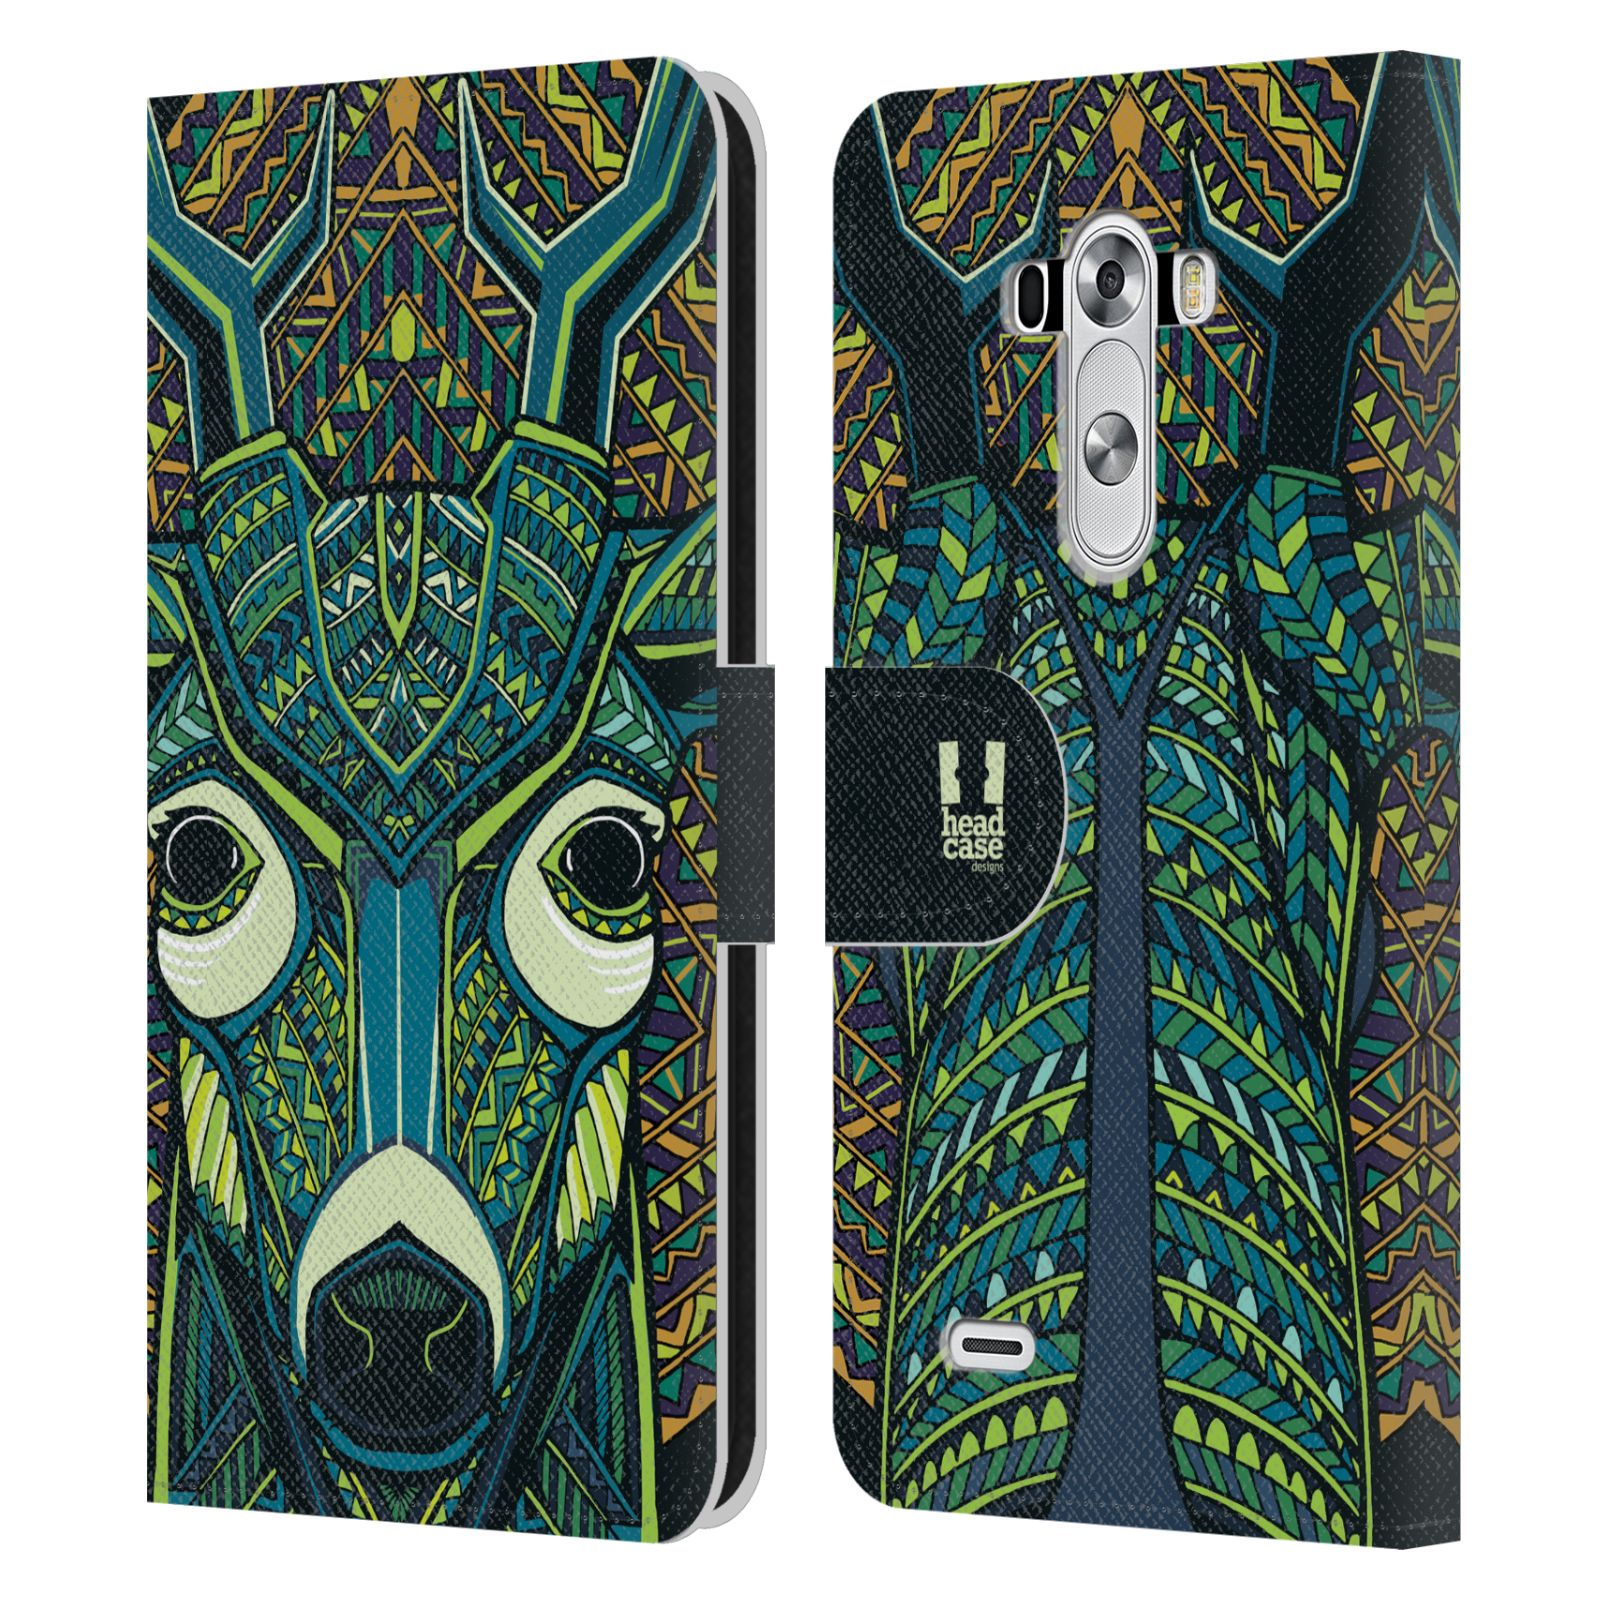 Book Covers With Faces : Head case designs aztec animal faces leather book wallet